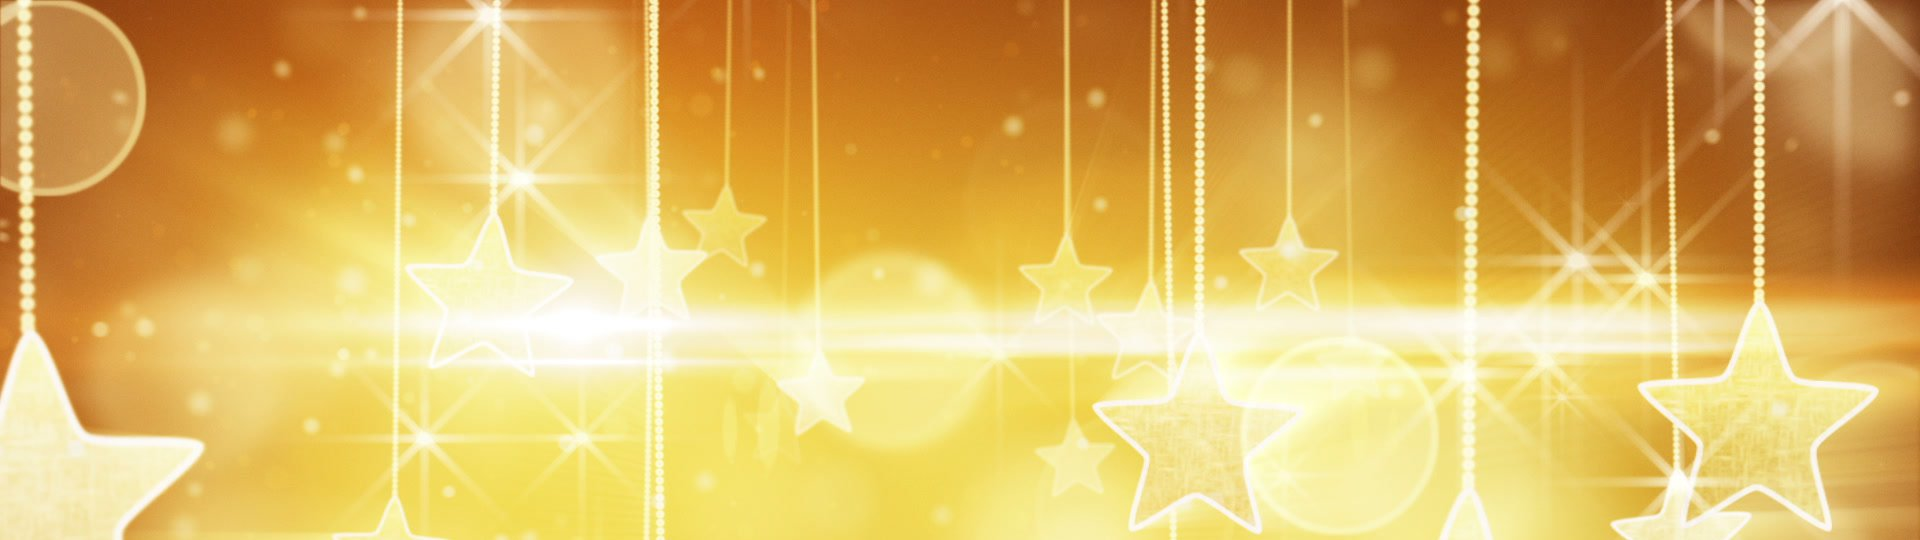 Flying past by gold hanging stars loopable | flying past by gold hanging stars. computer generated seamless loop holidays motion background. HD 1080p - ID:13660